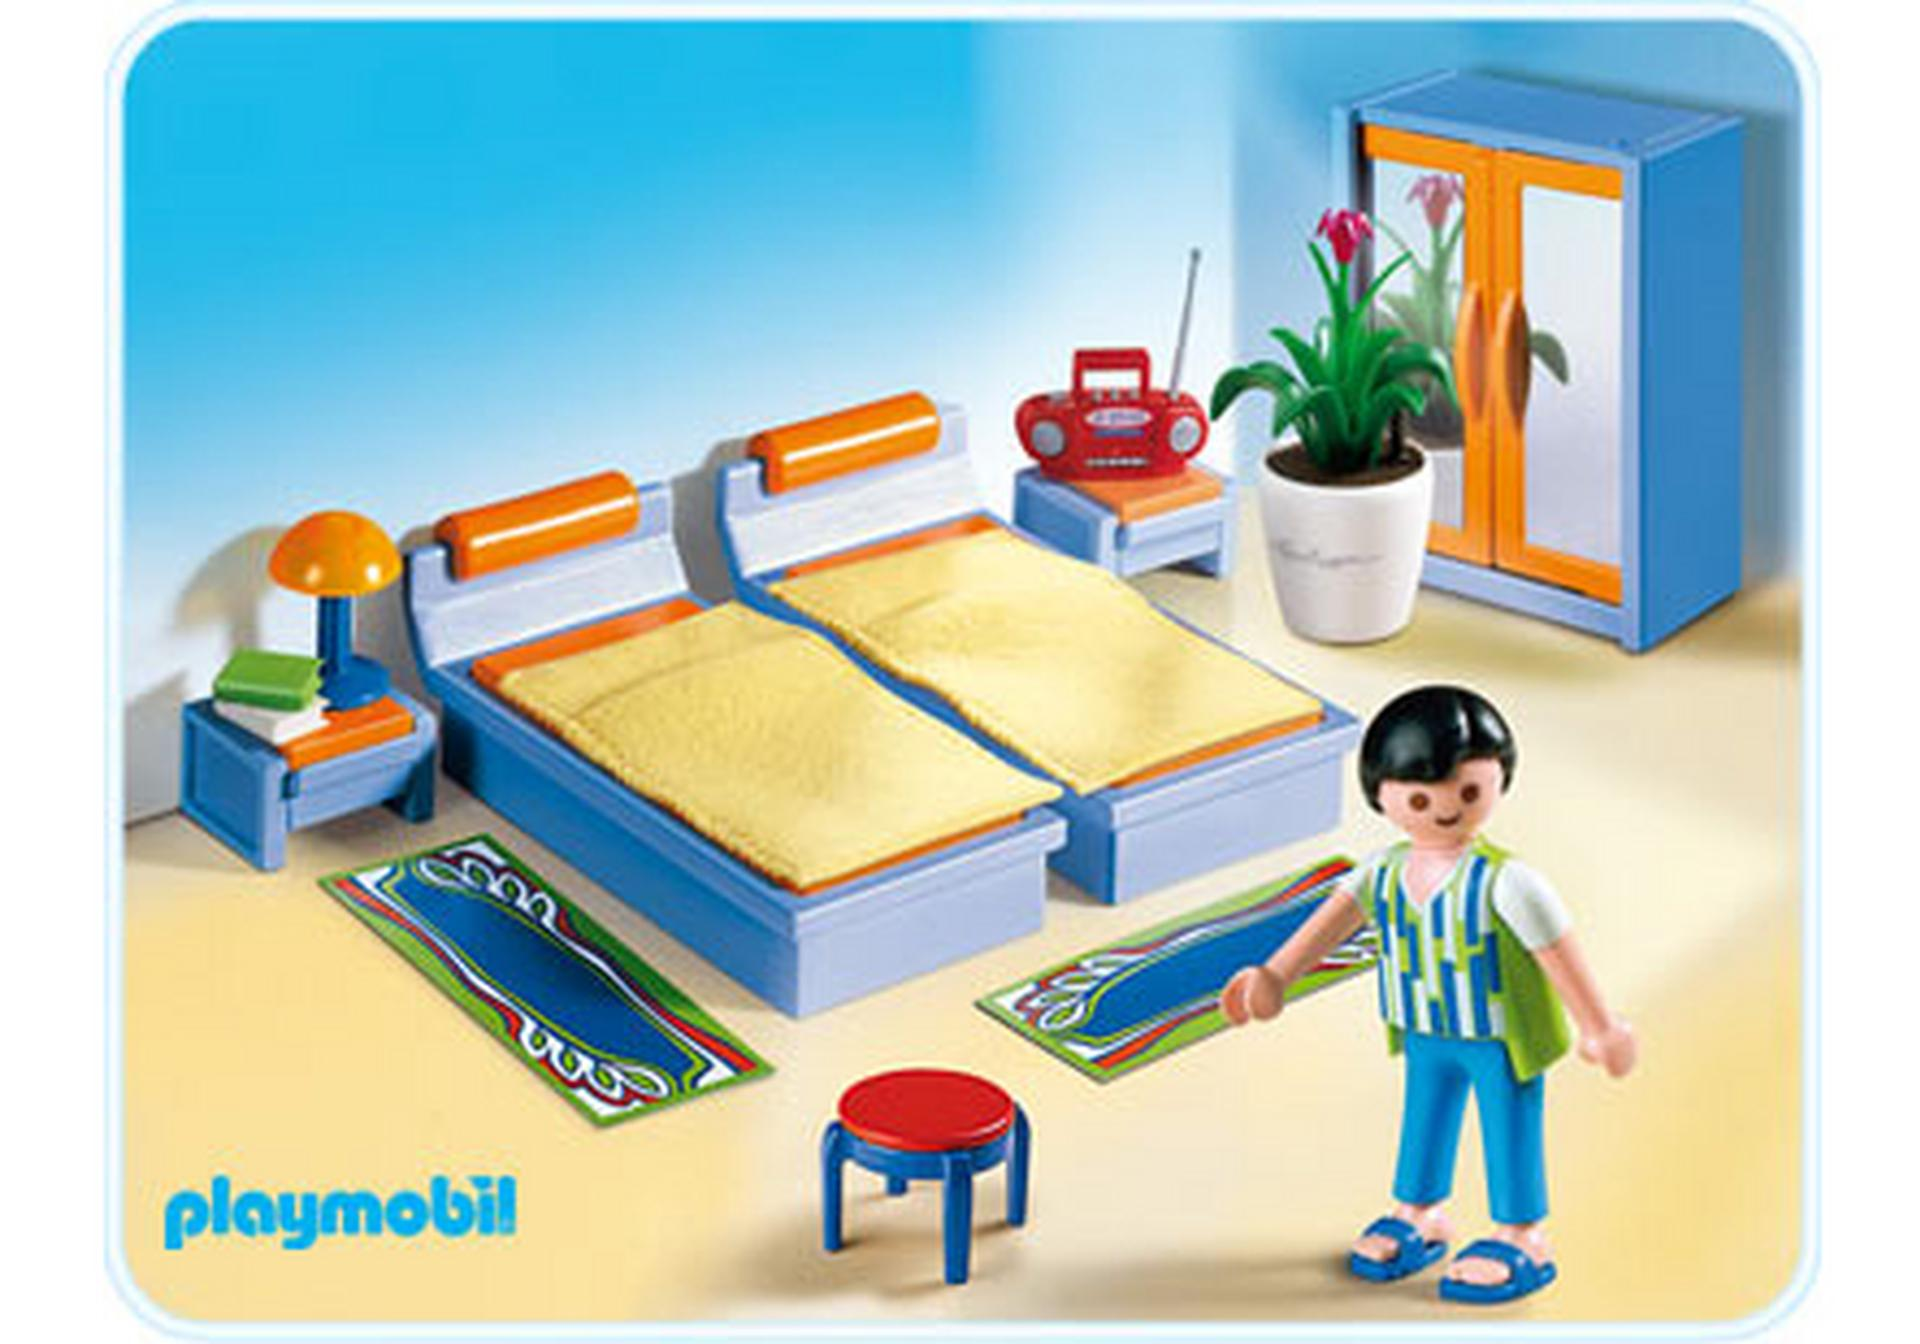 Chambre des parents 4284 a playmobil france - Chambre parents playmobil ...